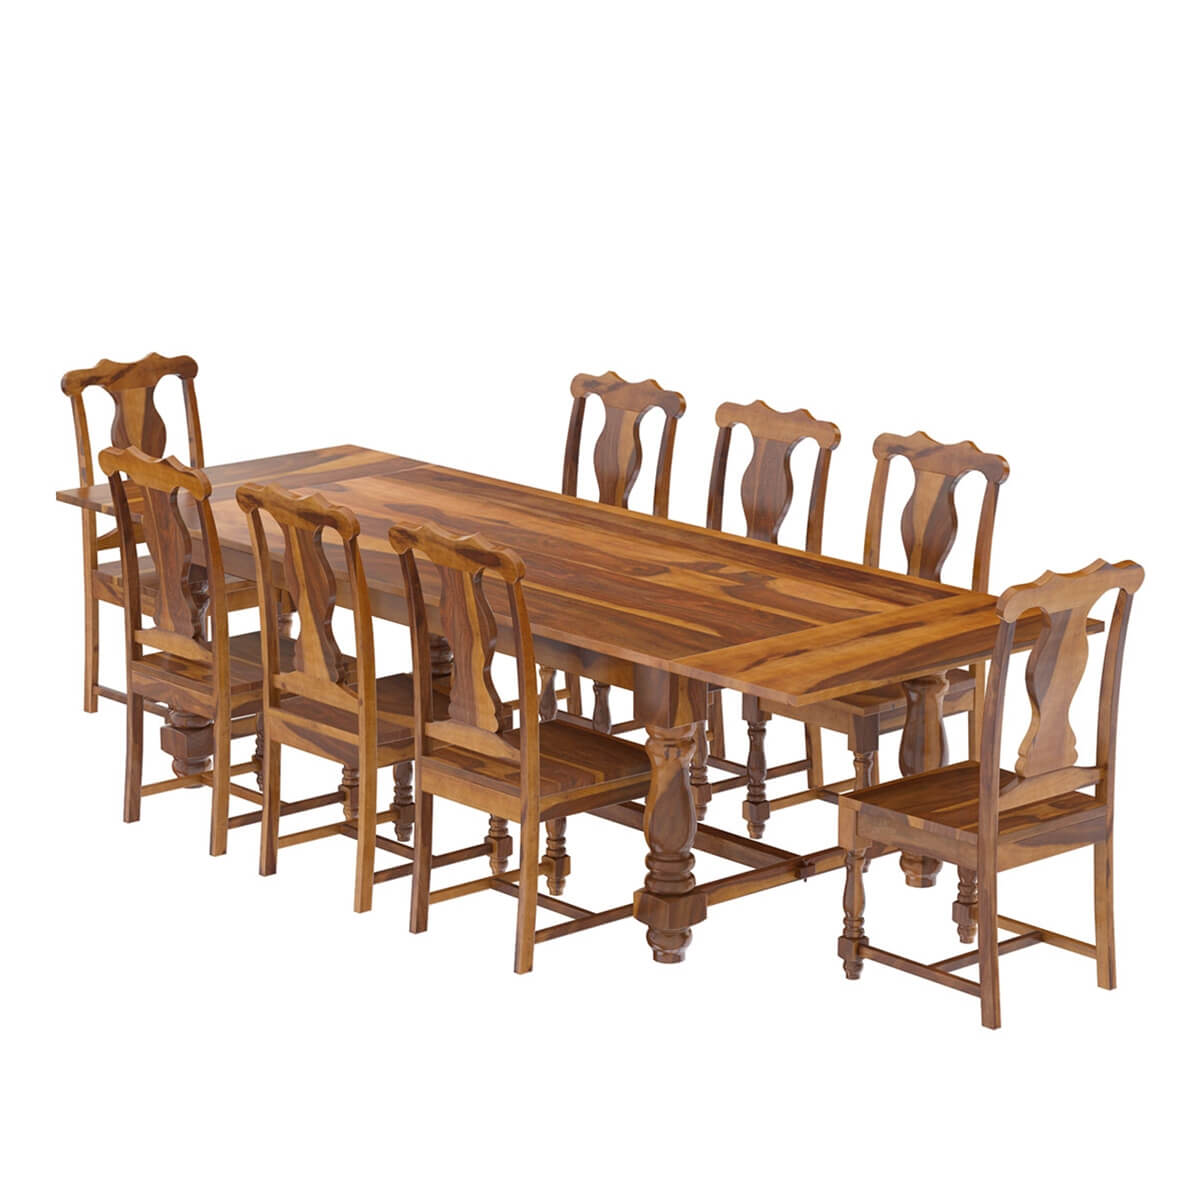 Rustic solid wood dining table chair set furniture w for Solid wood dining table